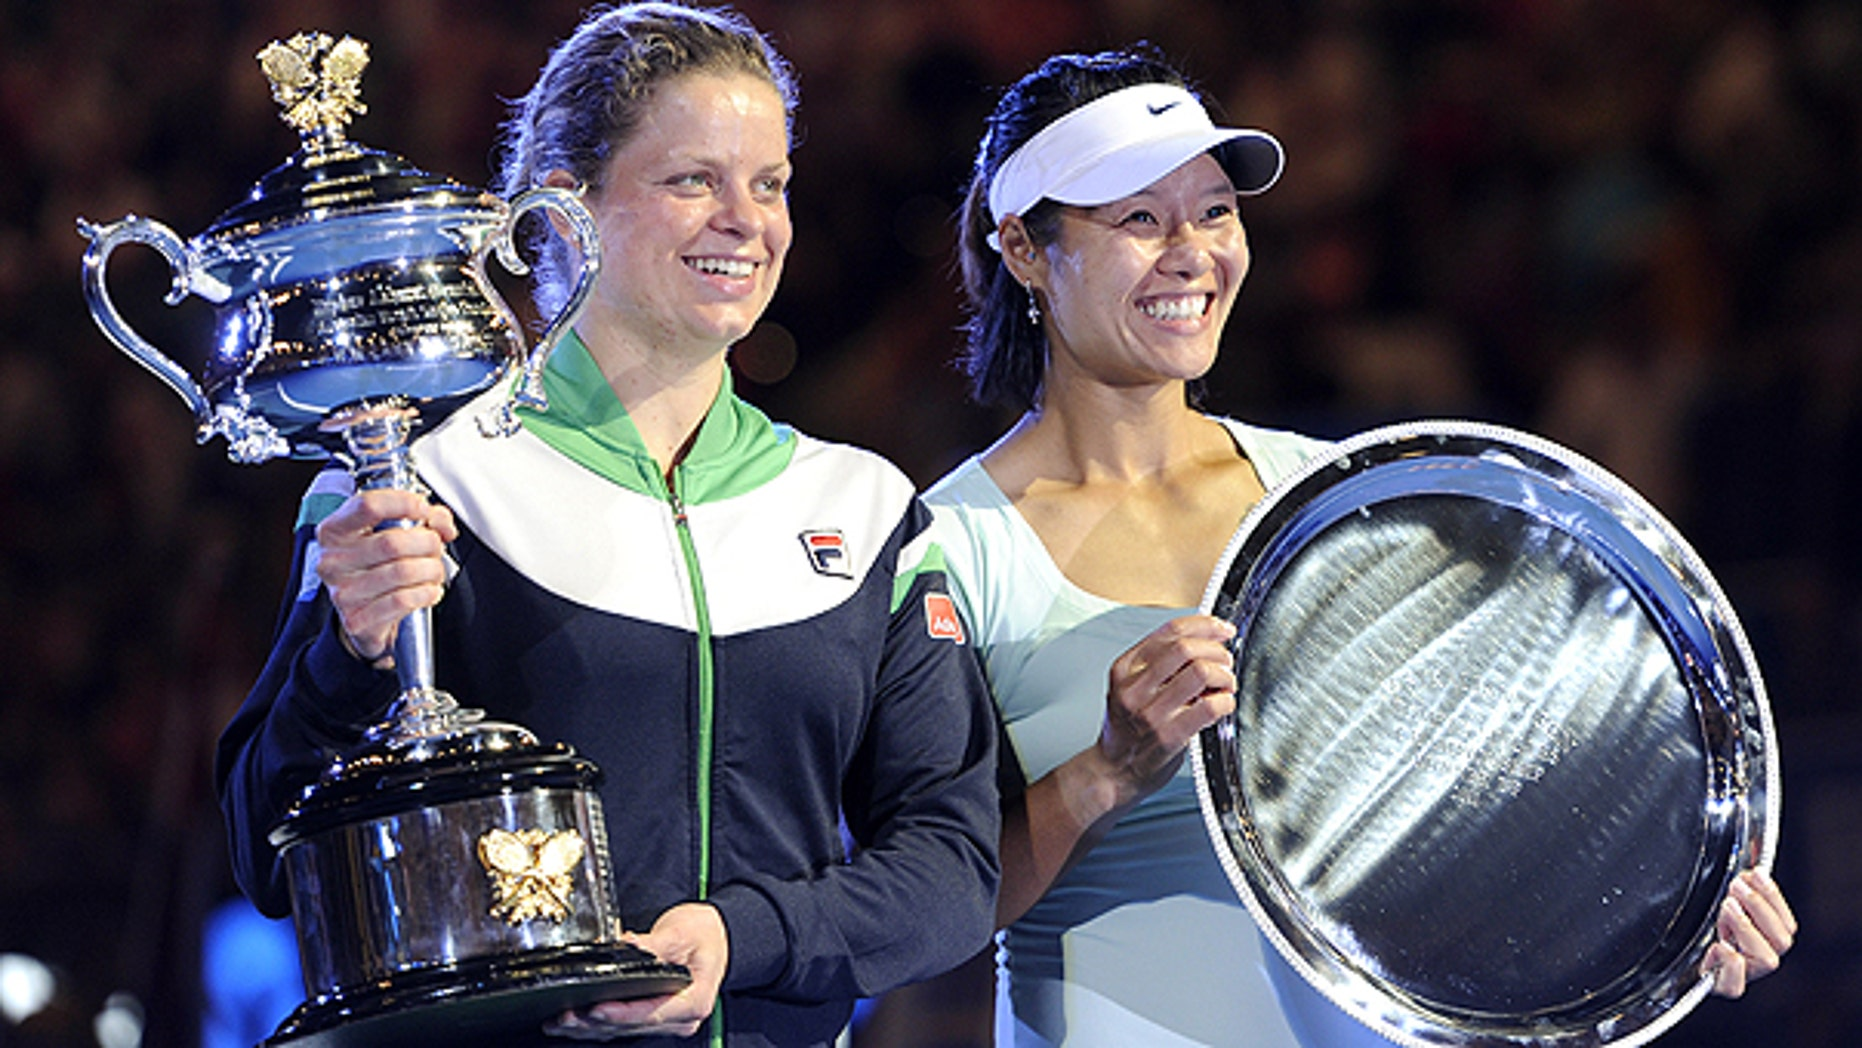 Jan. 29: Belgium's Kim Clijsters, left, holds the trophy along with runner-up China's Li Na look after Clijsters won the women's singles final at the Australian Open tennis championships in Melbourne, Australia.